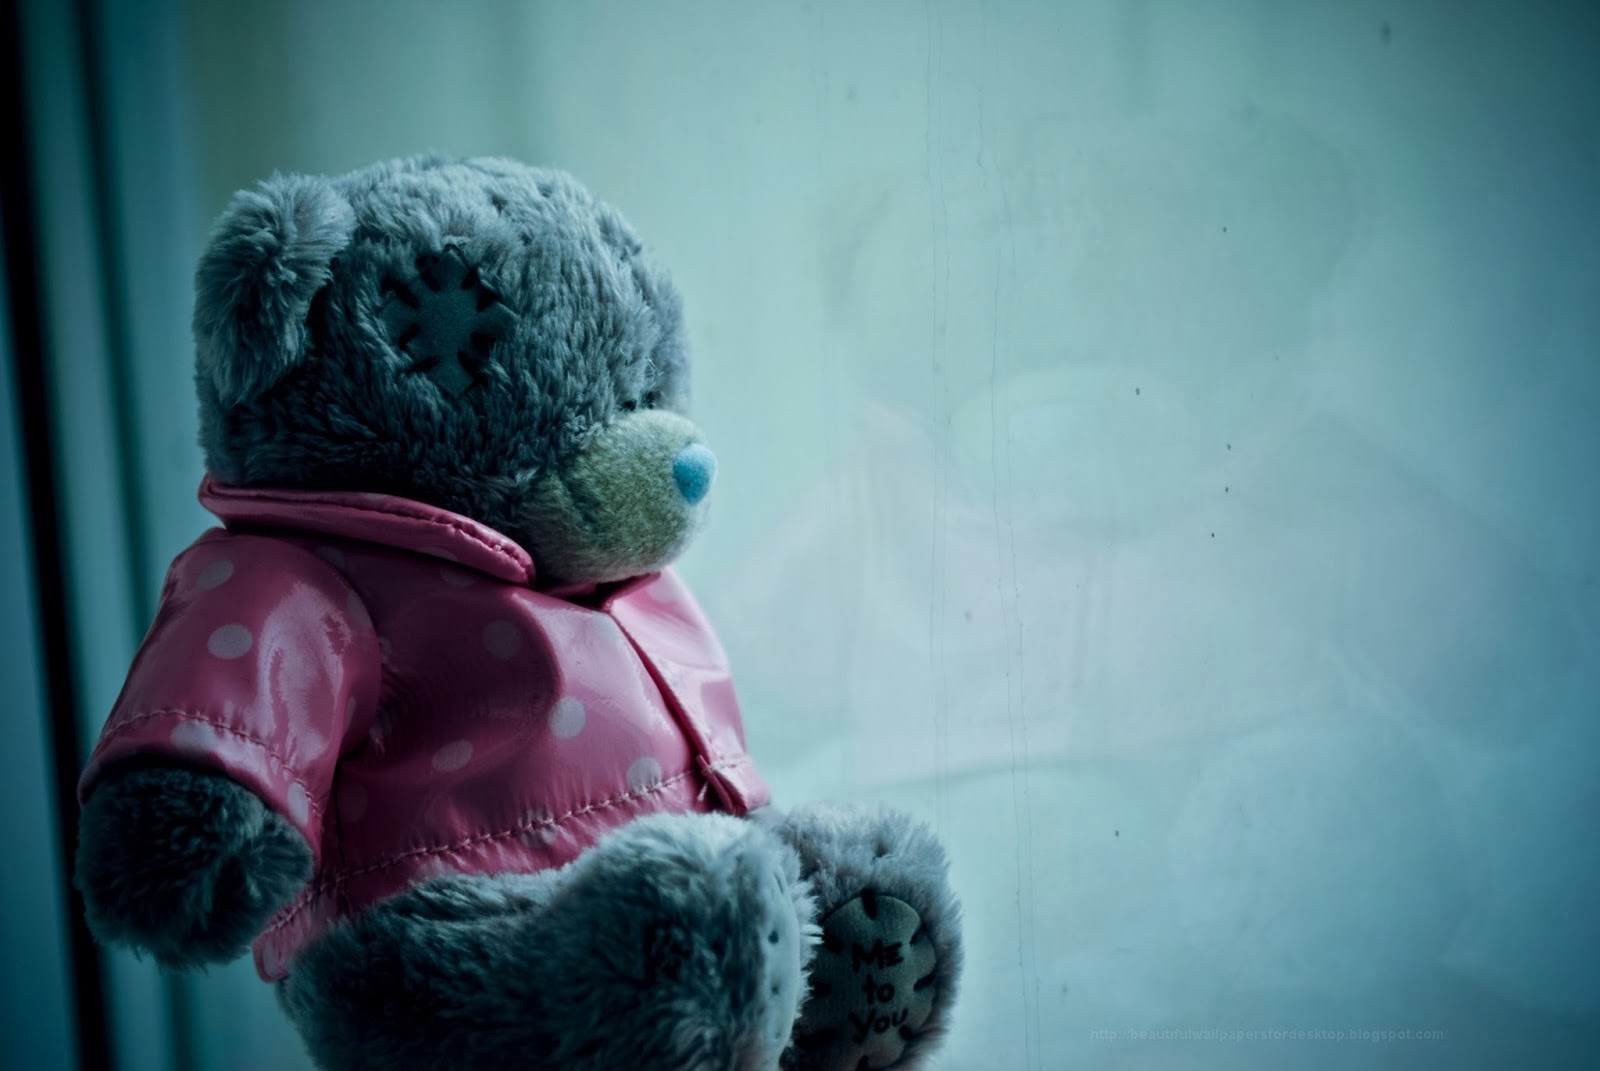 Love Teddy Wallpaper Hd : Desktop Wallpapers,Animals Wallpapers,Flowers Wallpapers, Birds Wallpapers ,Sad Poetry ...